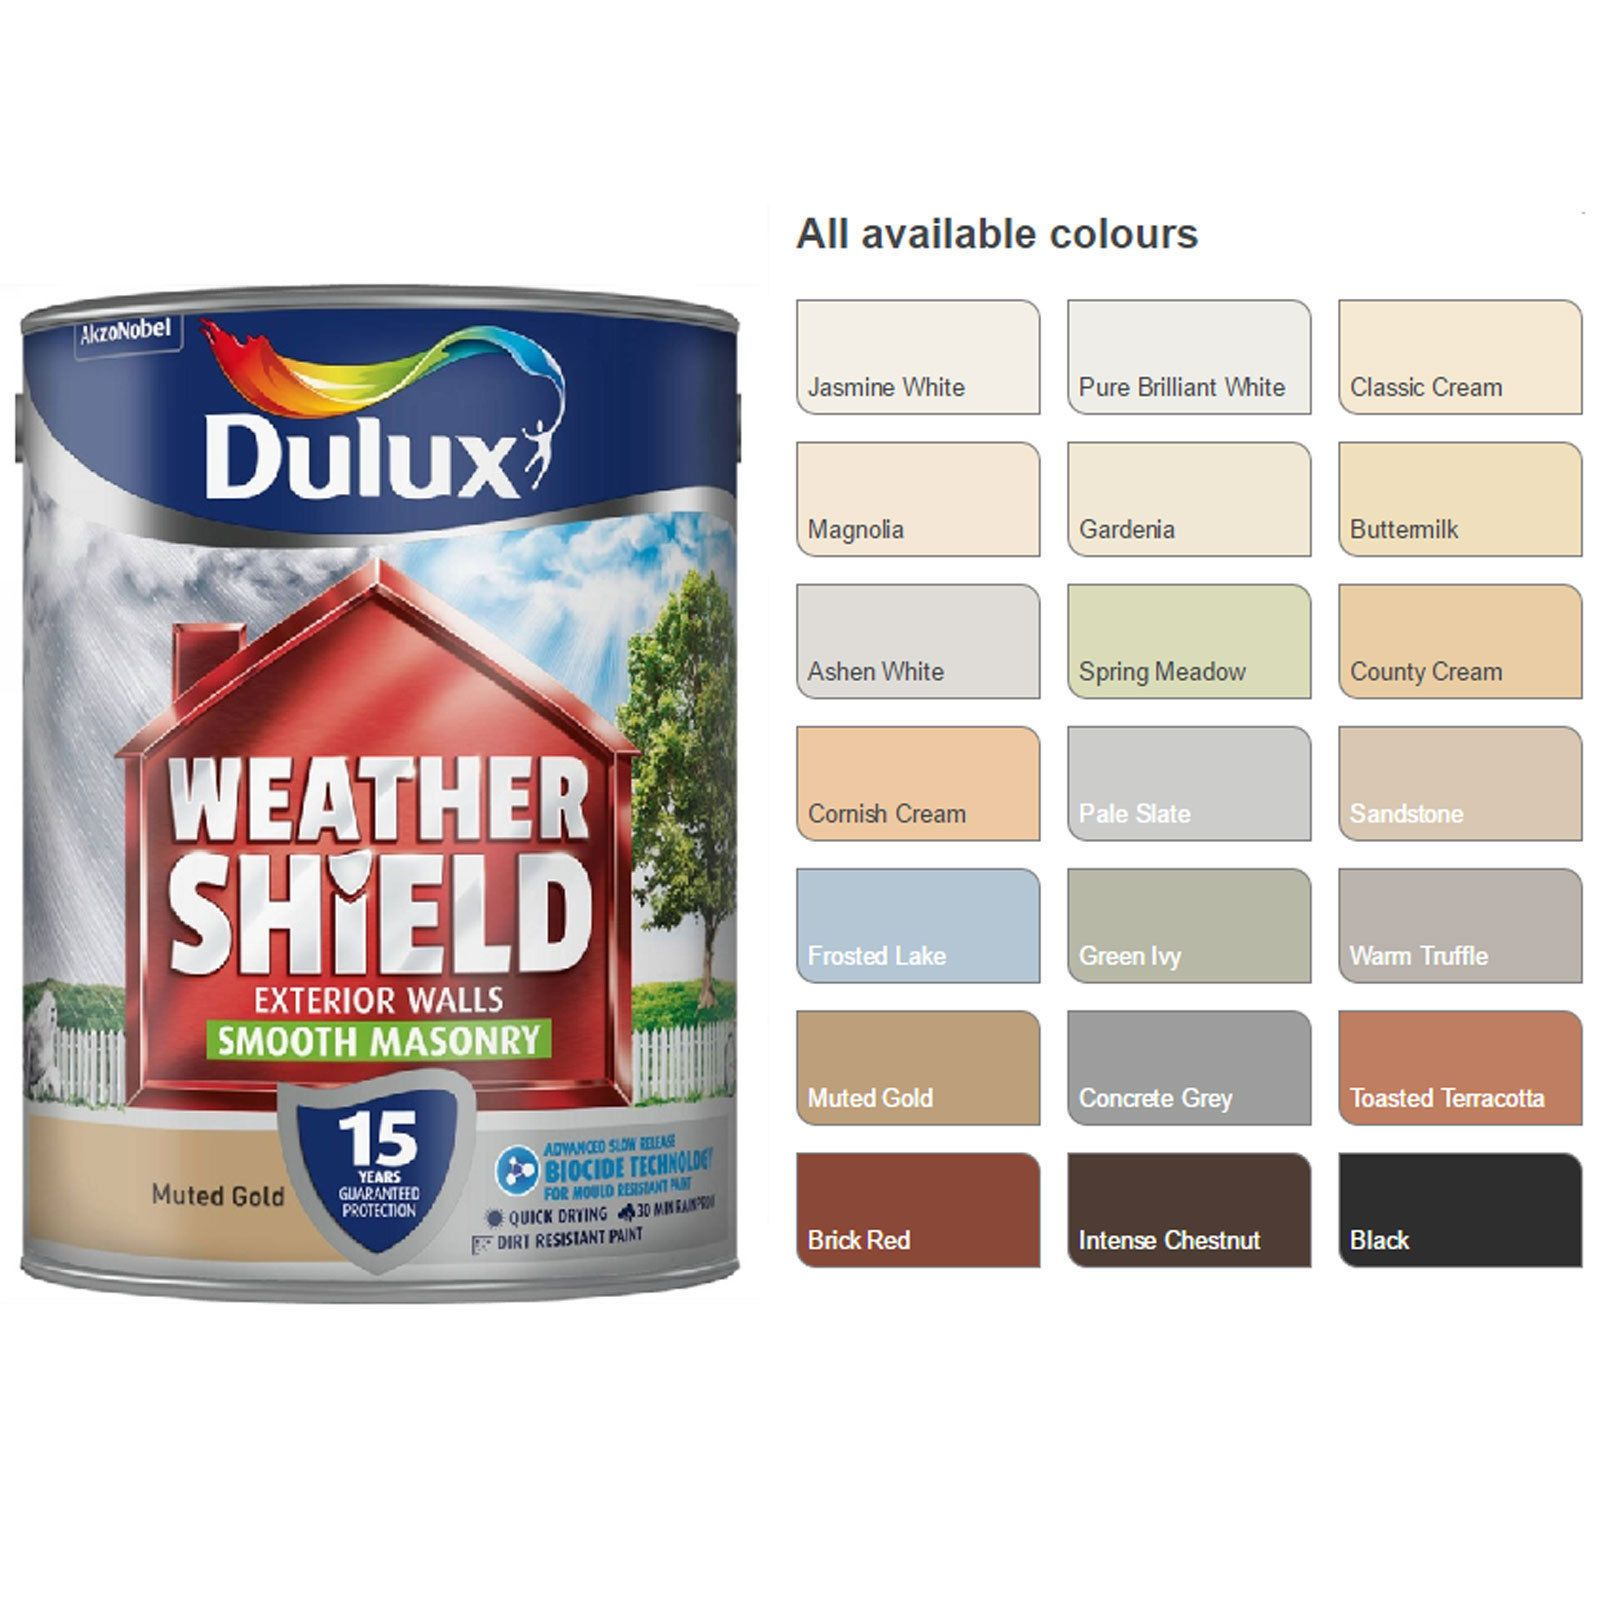 Dulux Weathershield Smooth Masonry Paint 5l Pick Your Colour Outdoor Paint Ebay Masonry Paint Dulux Weathershield Outdoor Paint